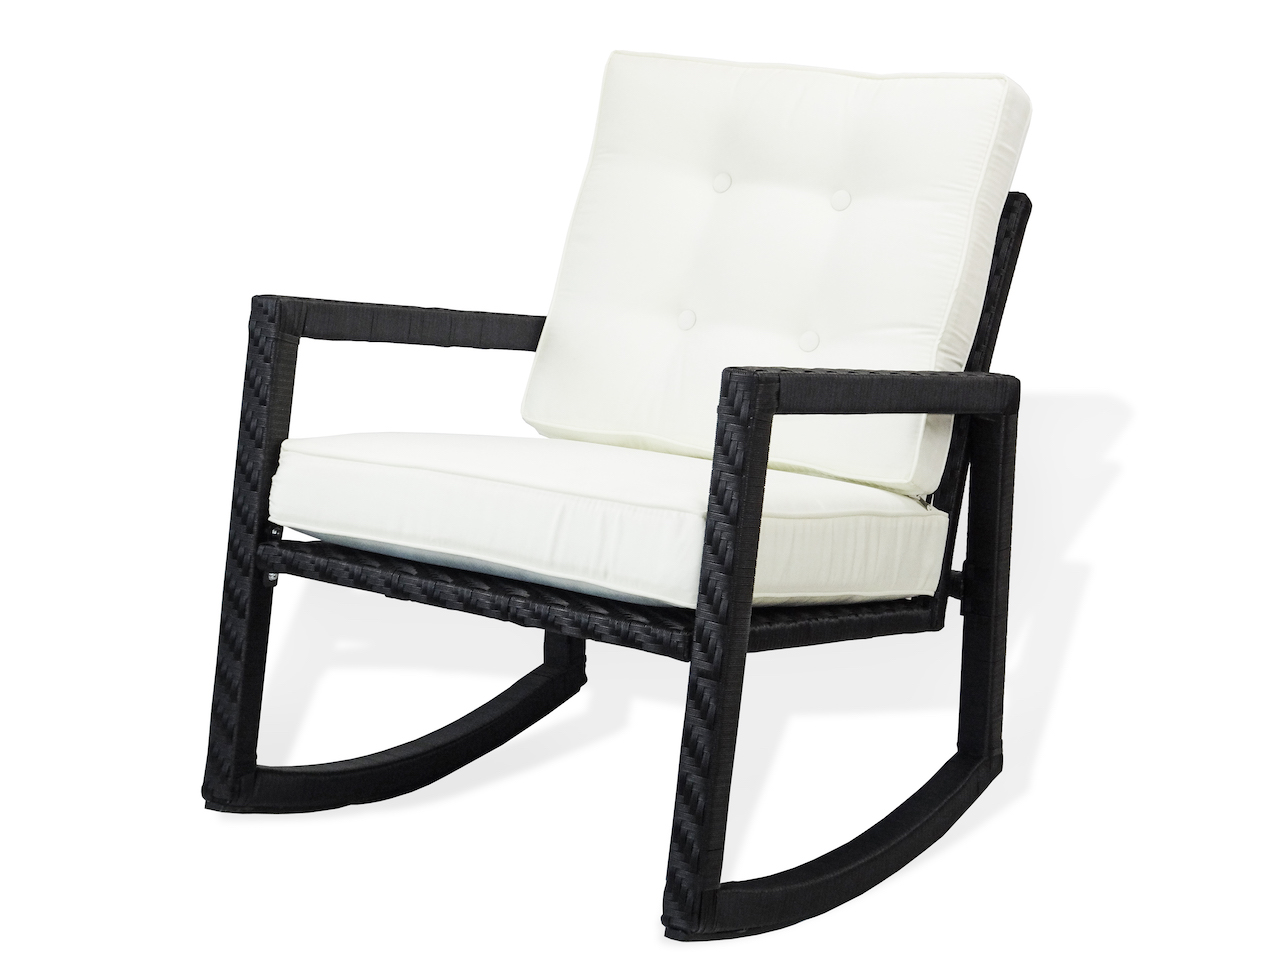 Buy Patio Resin Rocking Chair With Cushion In USA, Best